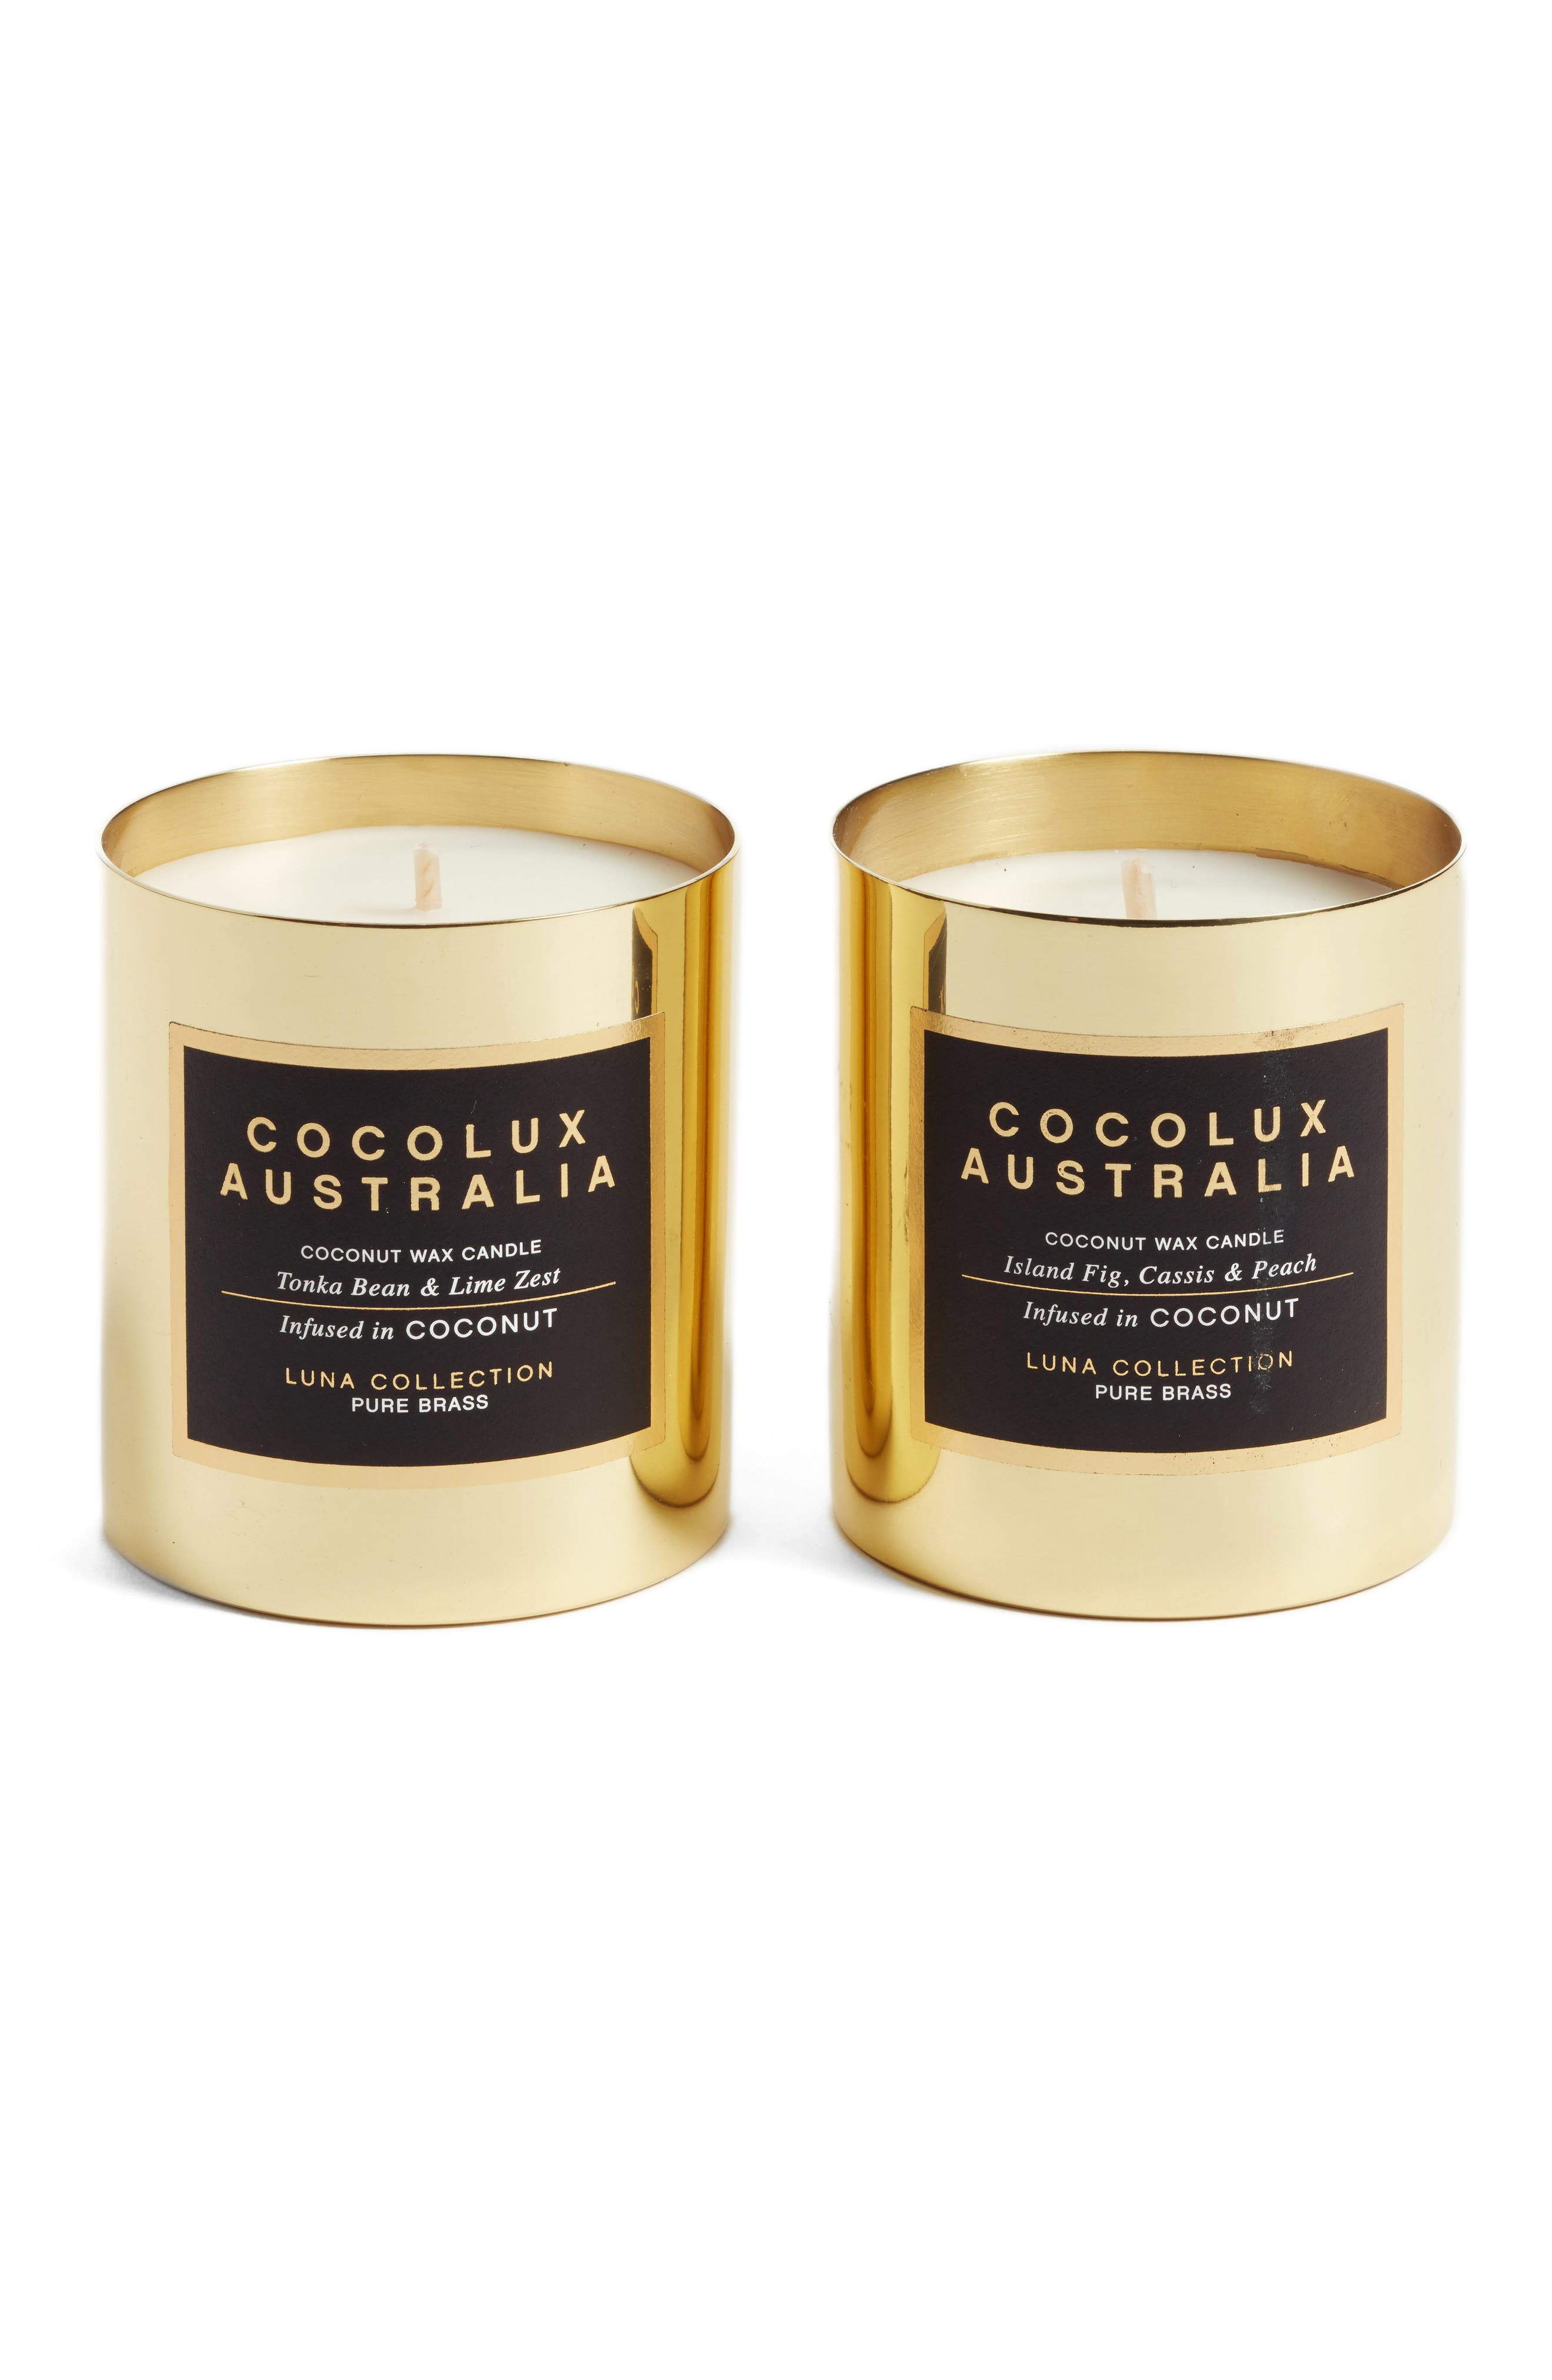 Alternate Image 1 Selected - Cocolux Australia Island Fig, Cassis & Peach & Tonka Bean & Lime Zest Candle Duo ($90 Value)